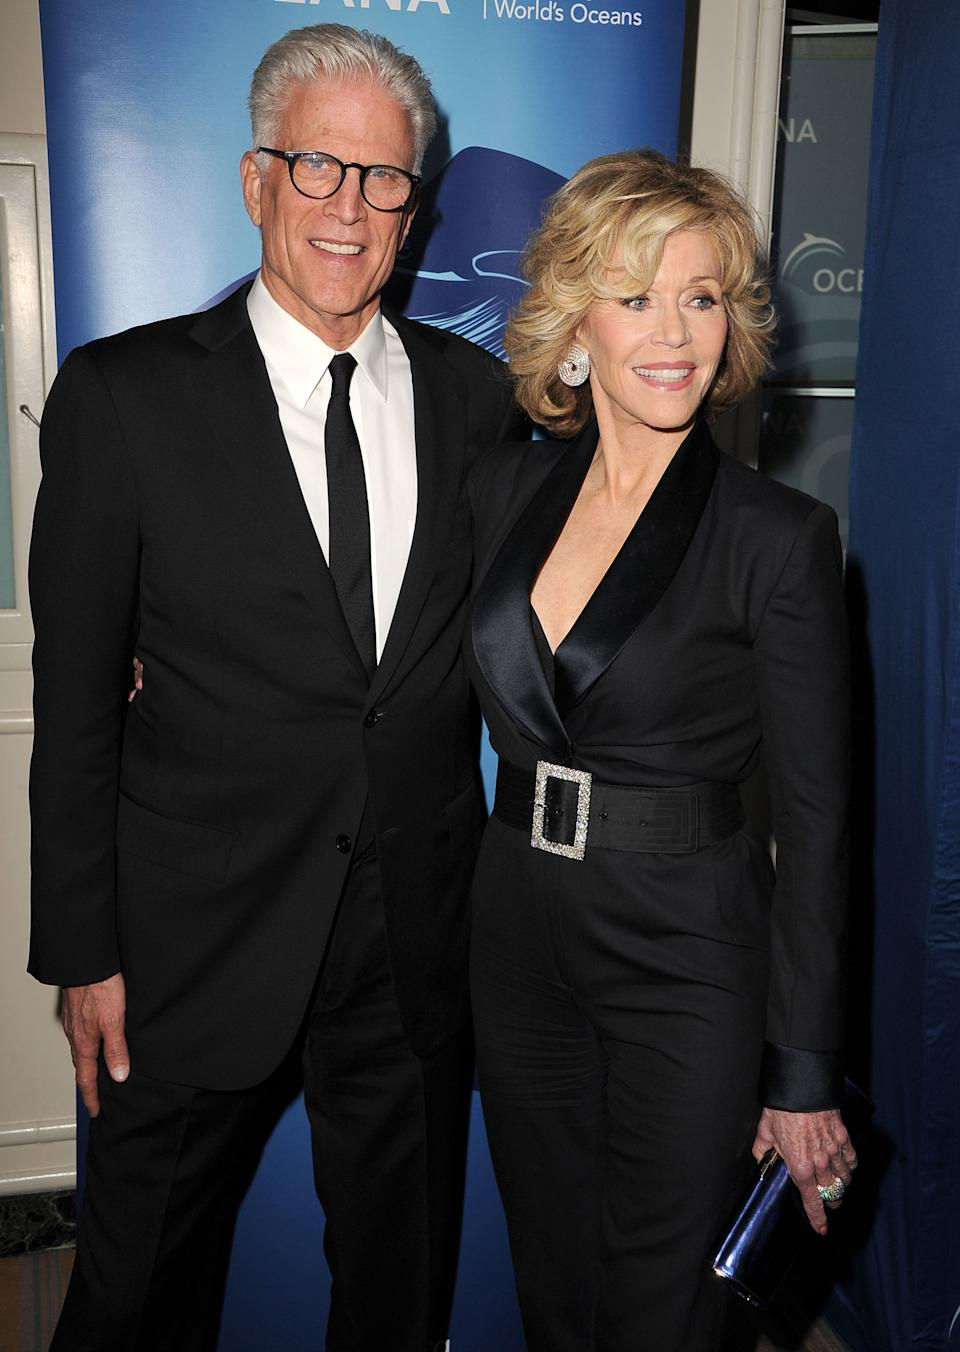 BEVERLY HILLS, CA - OCTOBER 30:  Ted Danson and Jane Fonda arrives at the Oceana Partners Award Gala With Former Secretary Of State Hillary Rodham Clinton and HBO CEO Richard Pleple at Regent Beverly Wilshire Hotel on October 30, 2013 in Beverly Hills, California.  (Photo by Steve Granitz/WireImage)